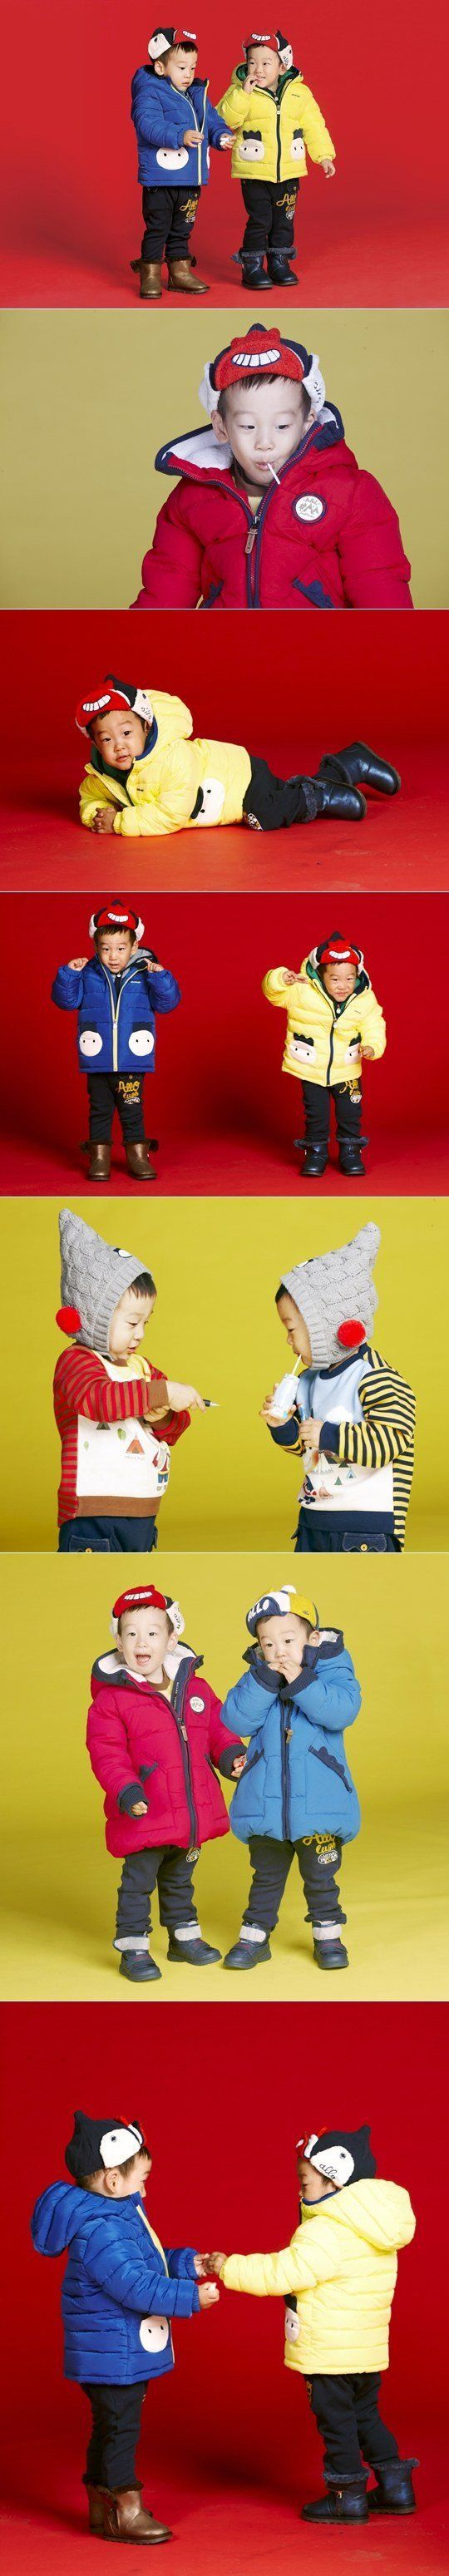 "Twins Suh Un and Suh Joon Look Cute In Their Photoshoot with ""allo&lugh"" 